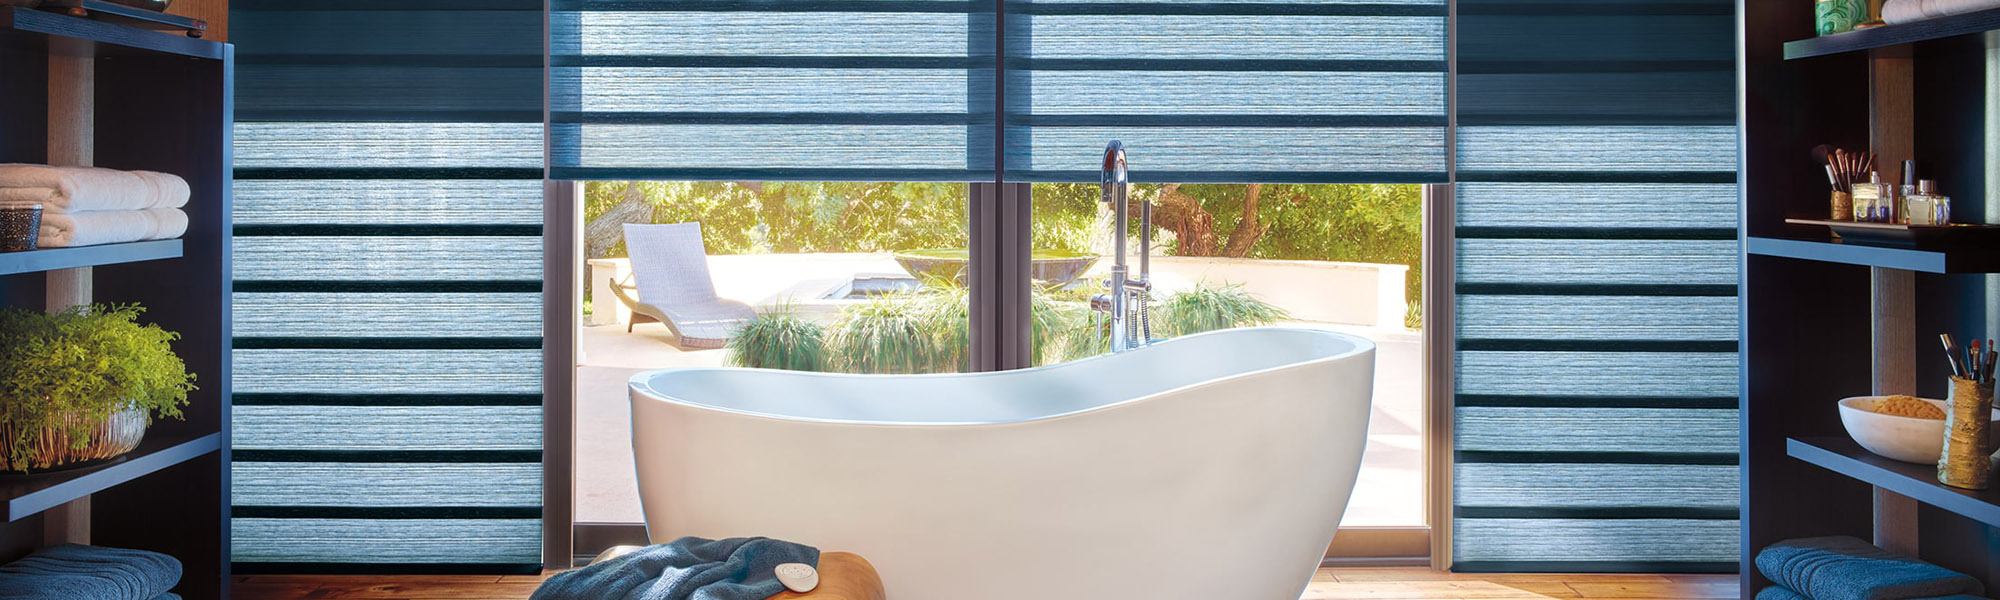 Bathroom With Clean Window Treatments